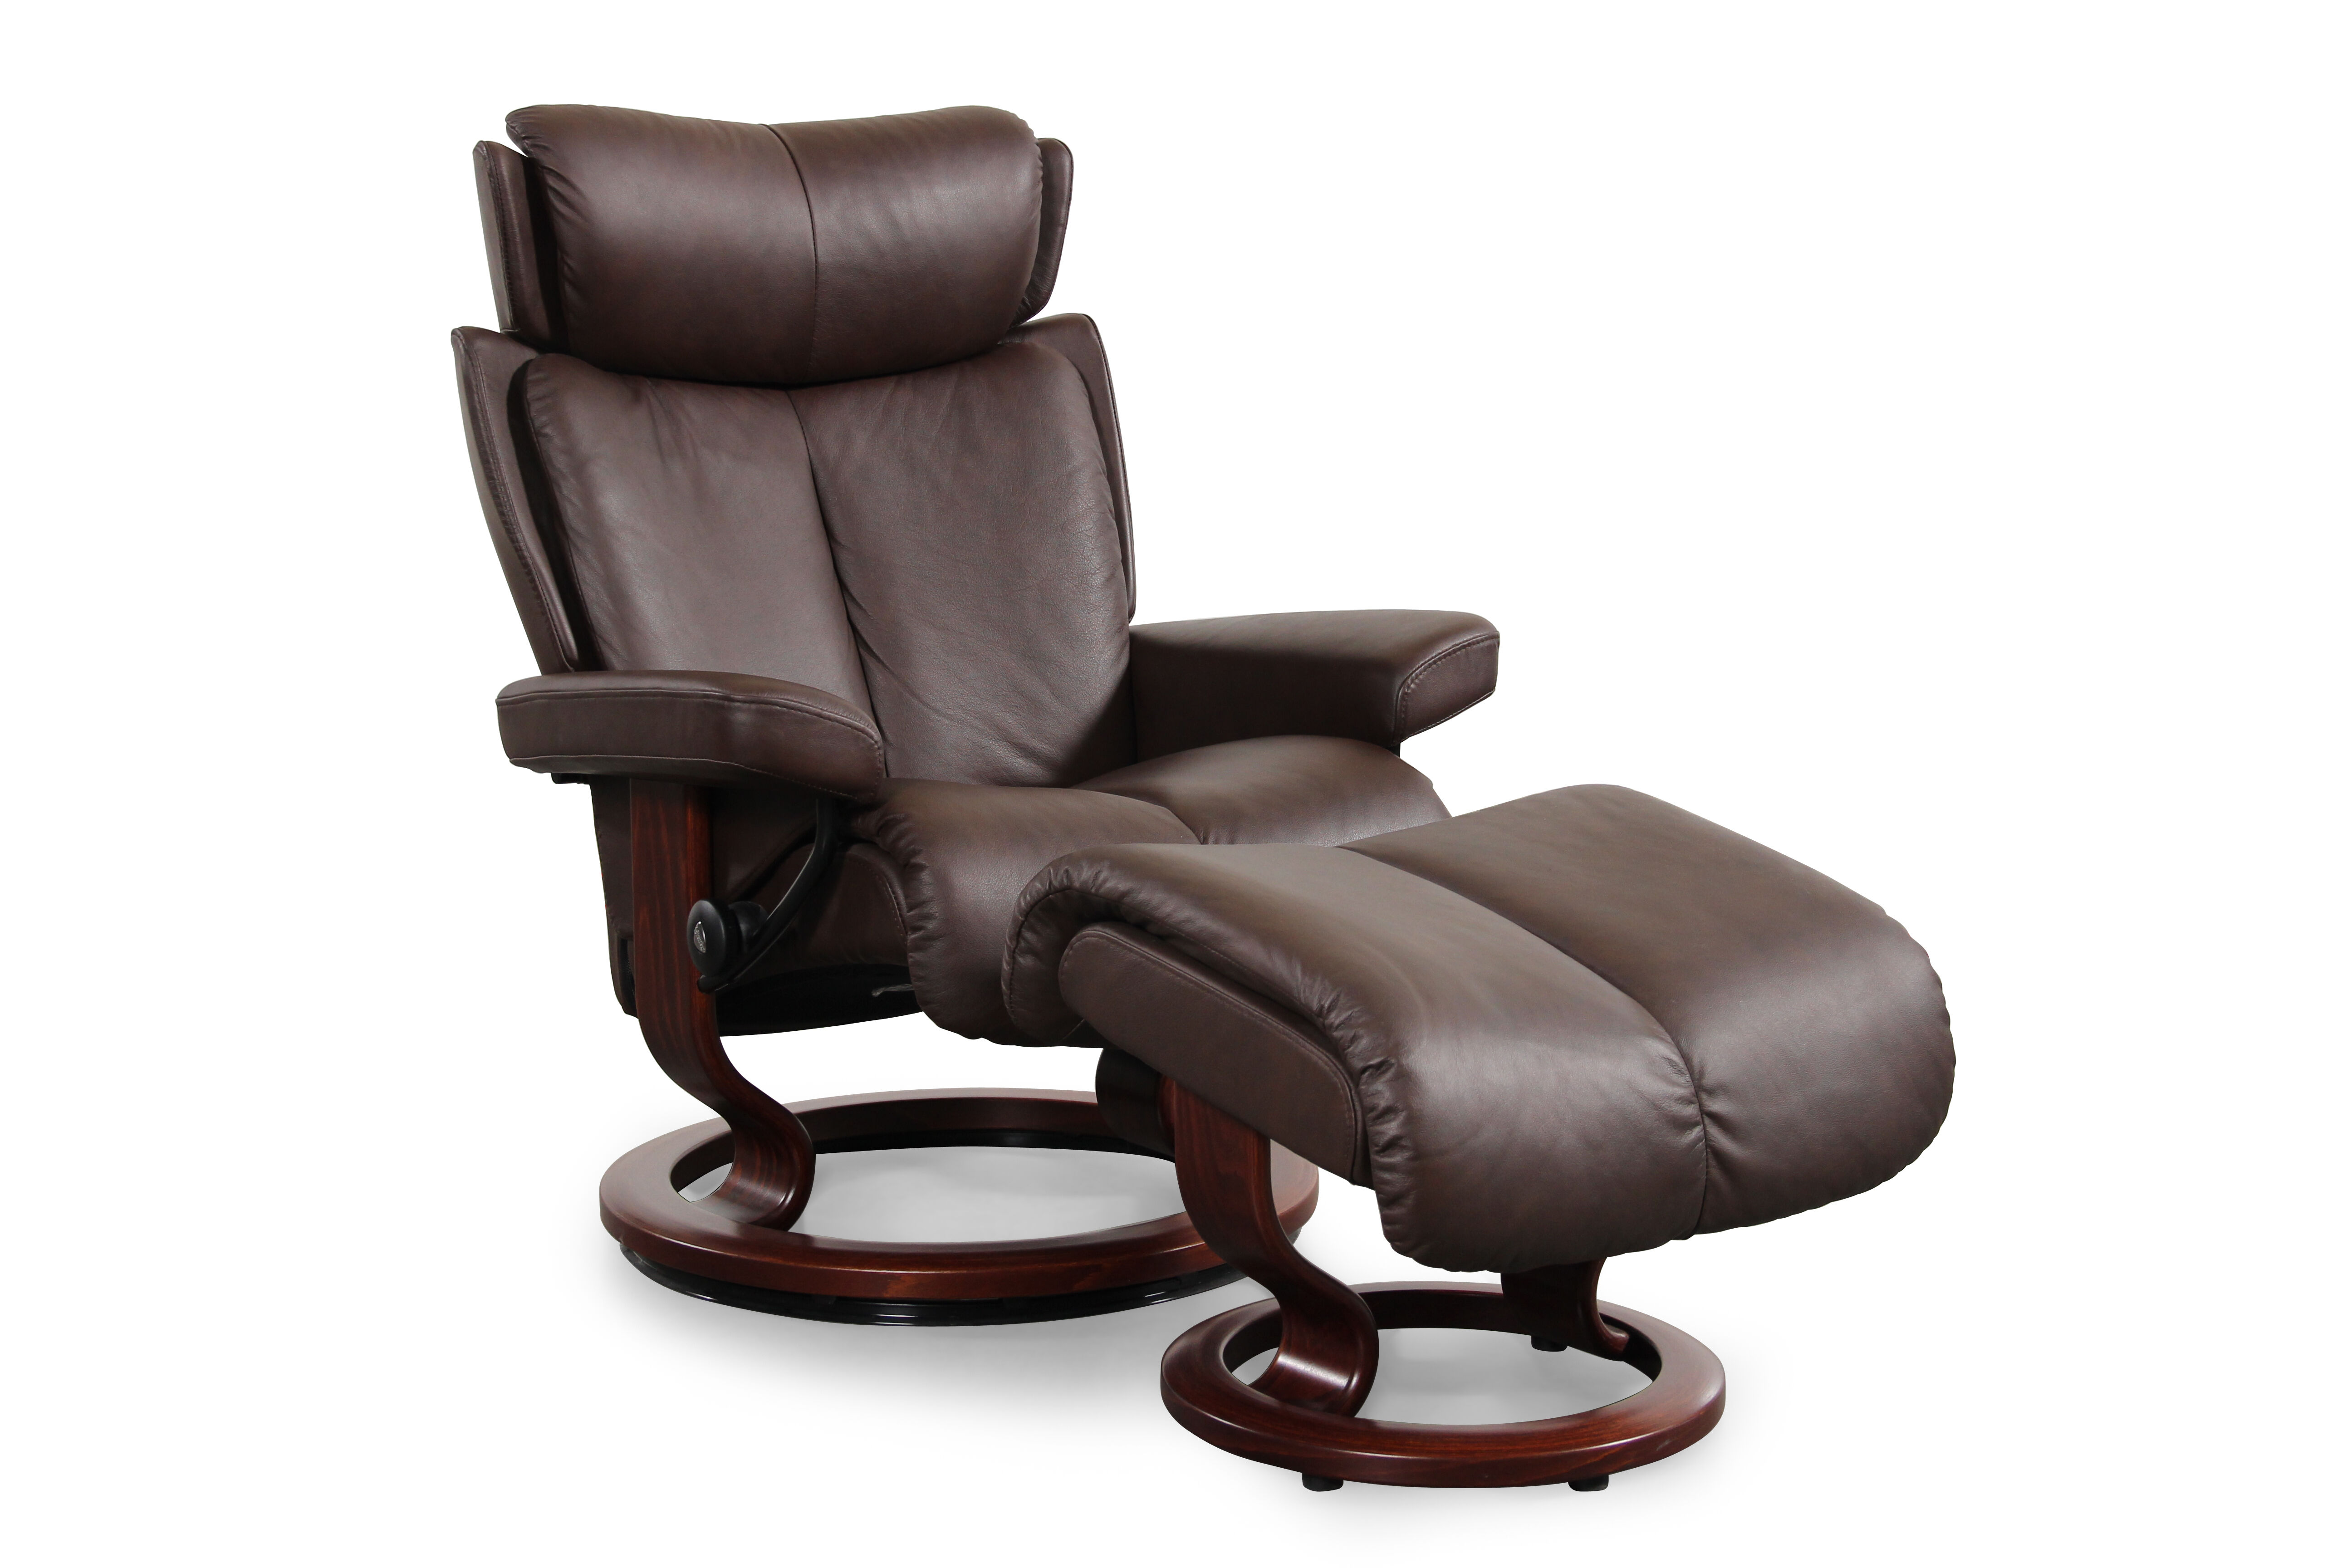 Contemporary Medium Swivel Chair and Ottoman in Chocolate